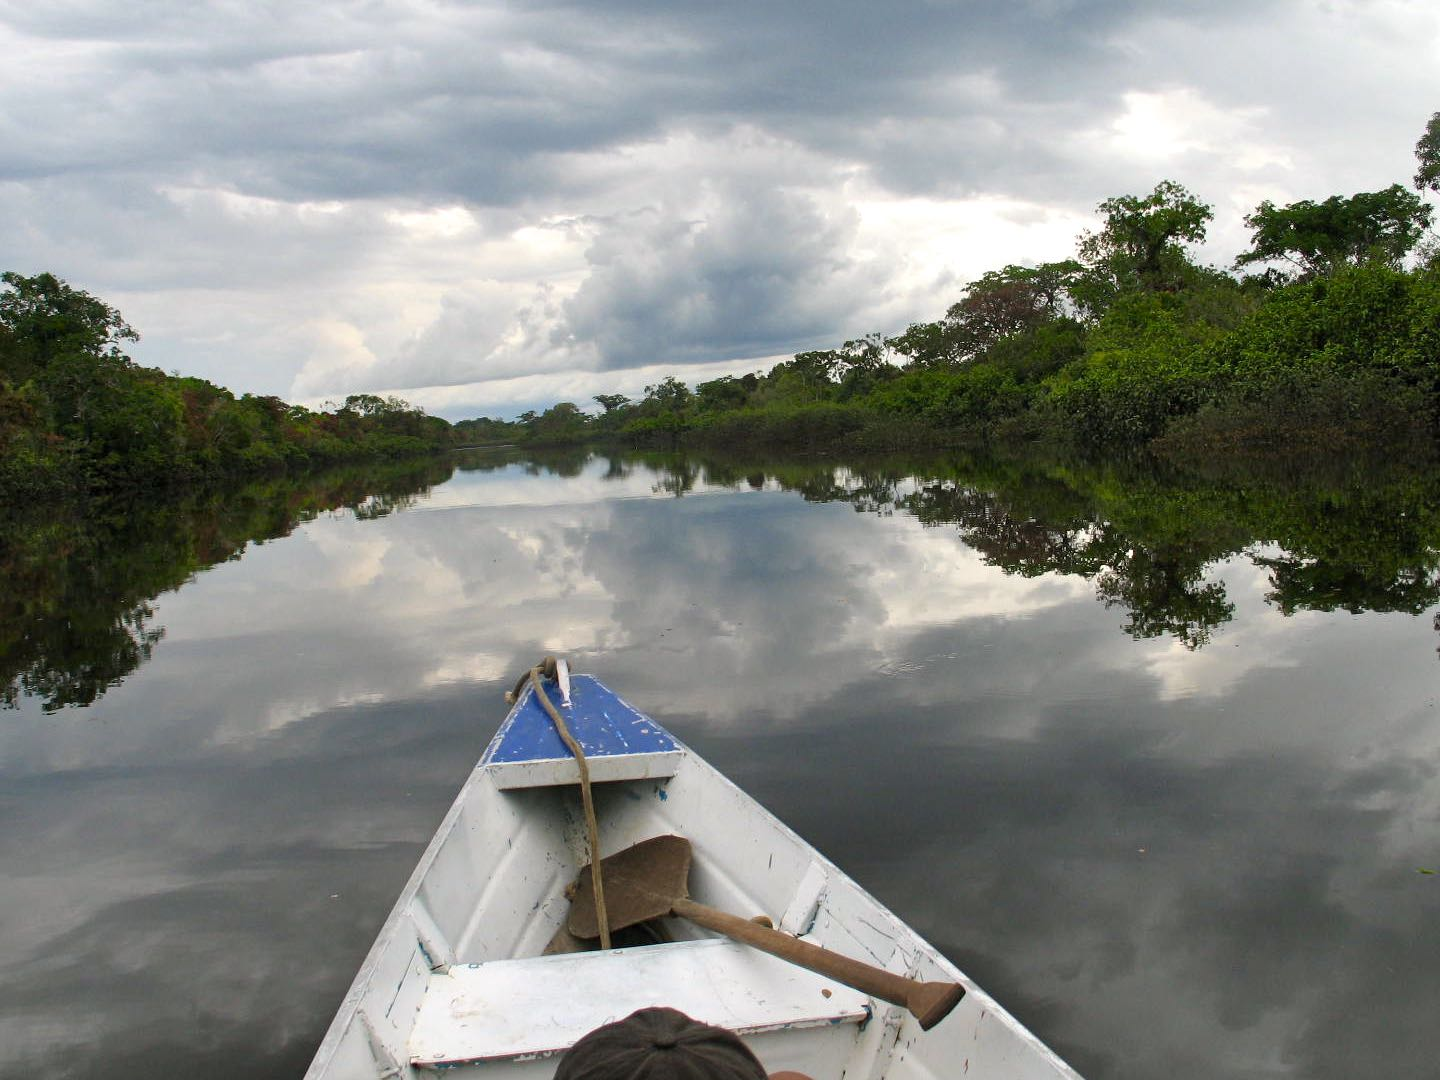 The Amazon River Adventure